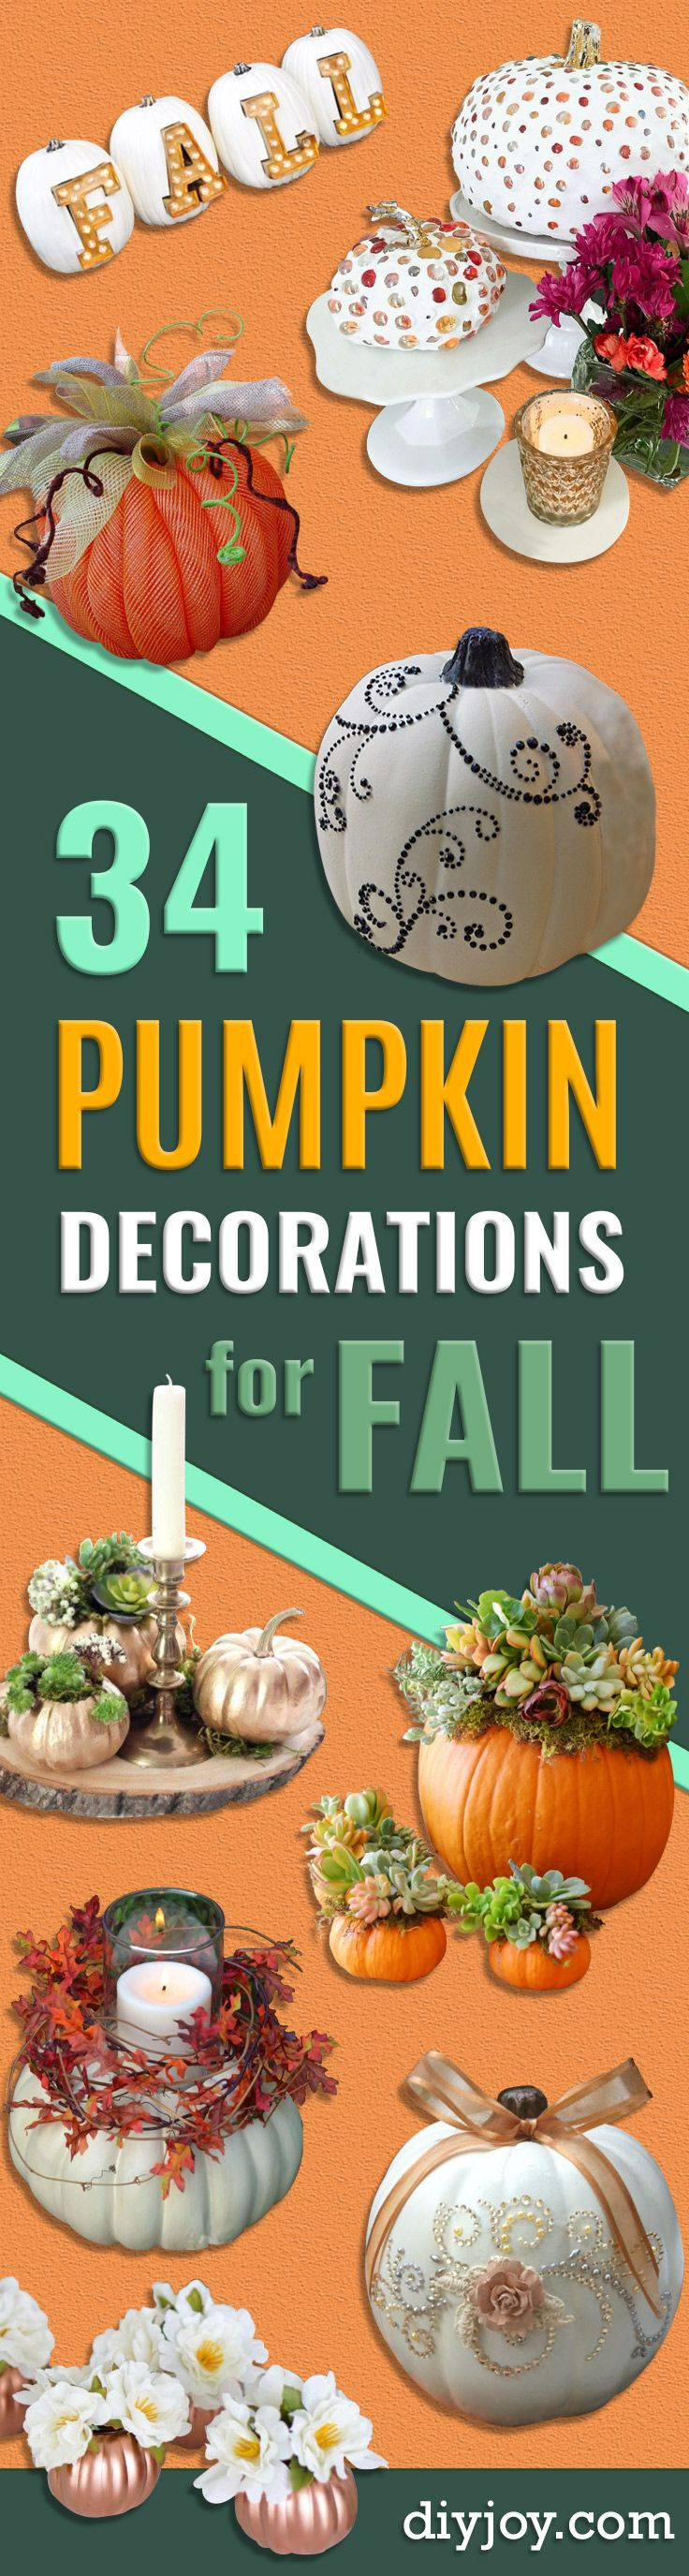 34 Pumpkin Decorations For Fall - Easy DIY   Pumpkin Decor Ideas for Home, Yard, Outdoors - Cool Pumpkin   Decorating Ideas for Adults and Kids Party, Creative Crafts   With Paint, Glitter and No Carve Projects for Halloween   http://diyjoy.com/pumpkin-decorations-fall